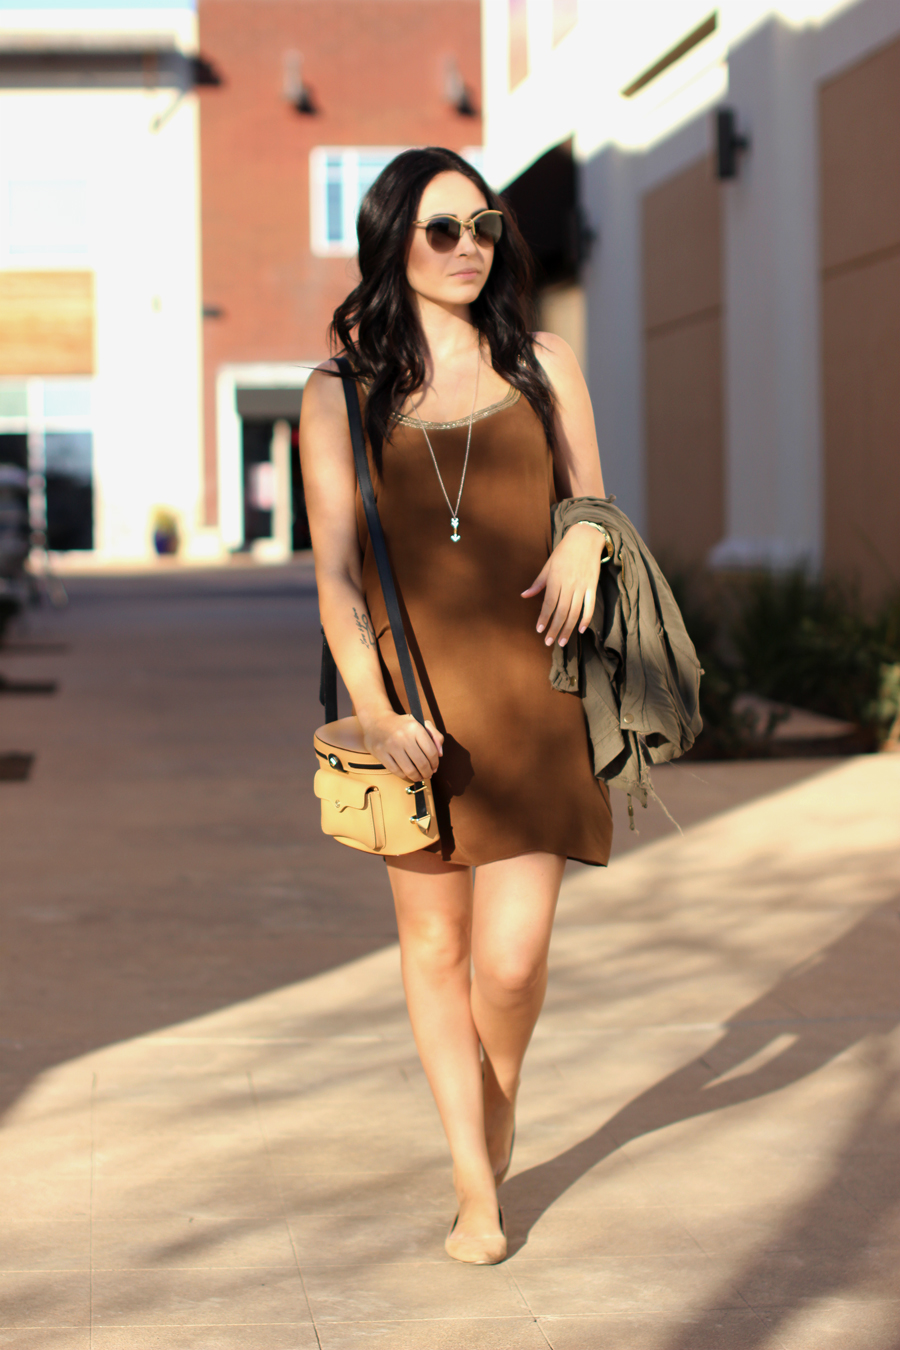 FTT-LURE-YOUNG-FABULOUS-NUDES-DRESS-AUSTIN-FASHION-BLOGGER-3